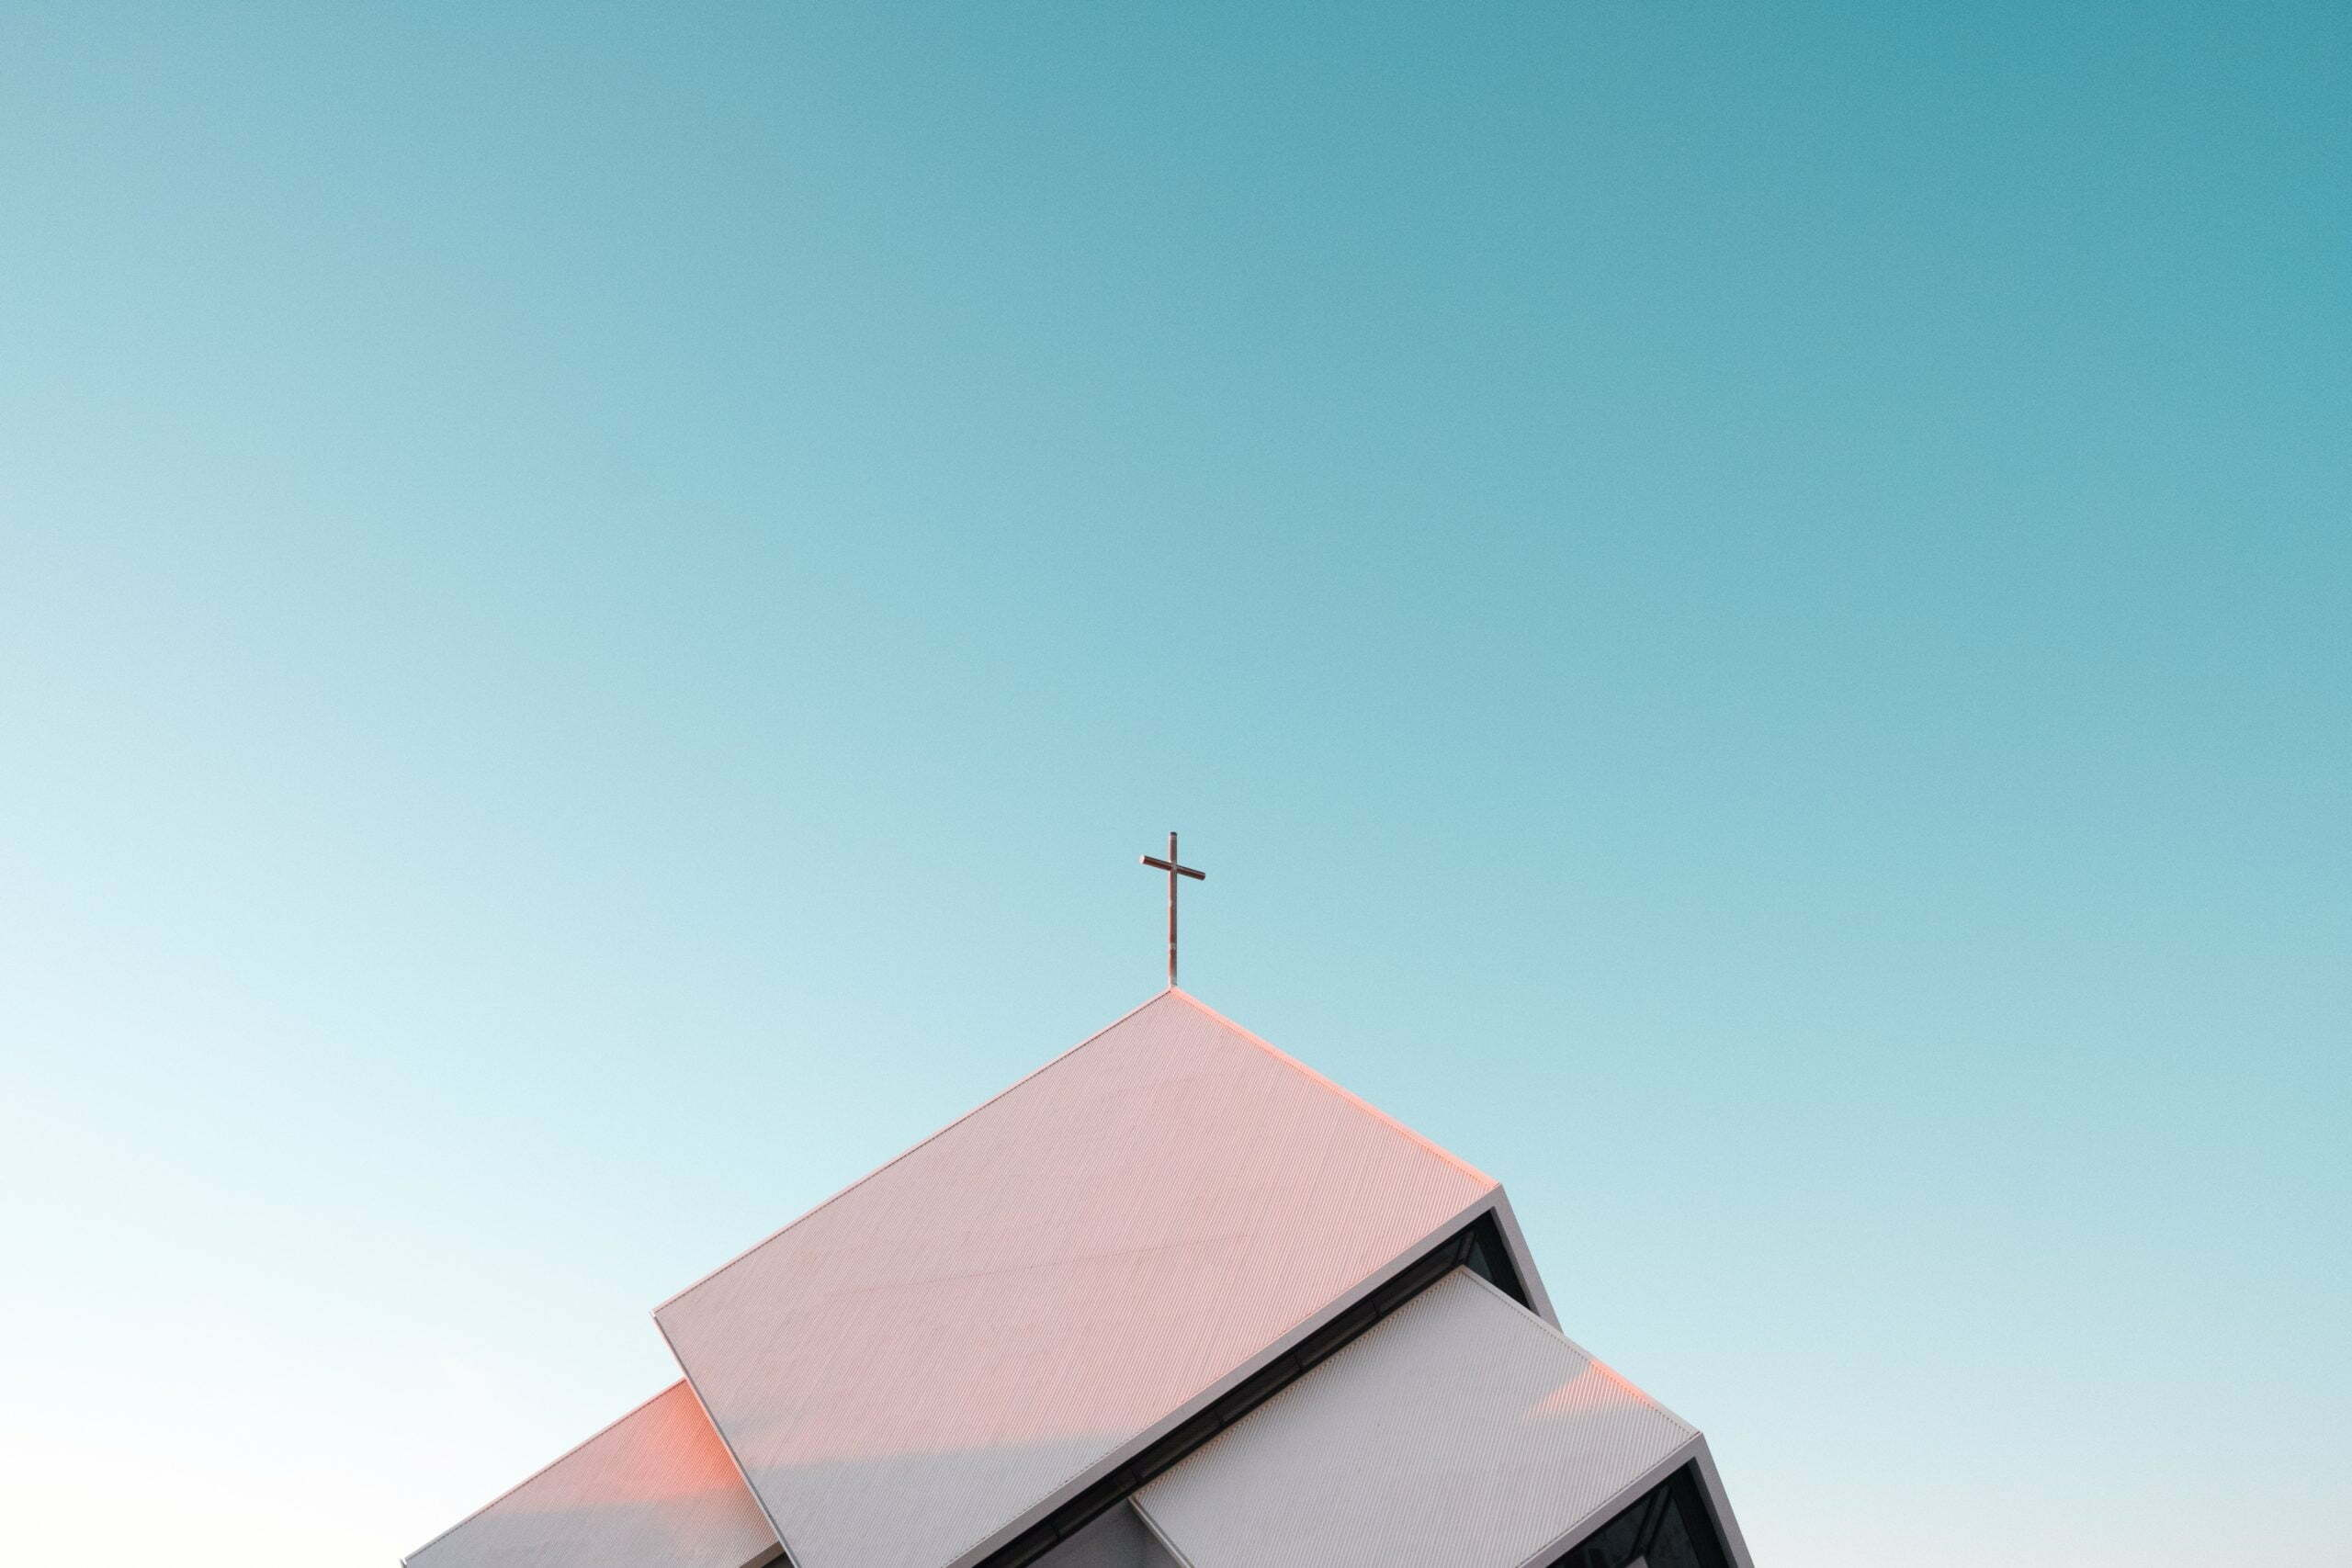 Dig Deeper: Why Do We Need To Be Part Of A Church?